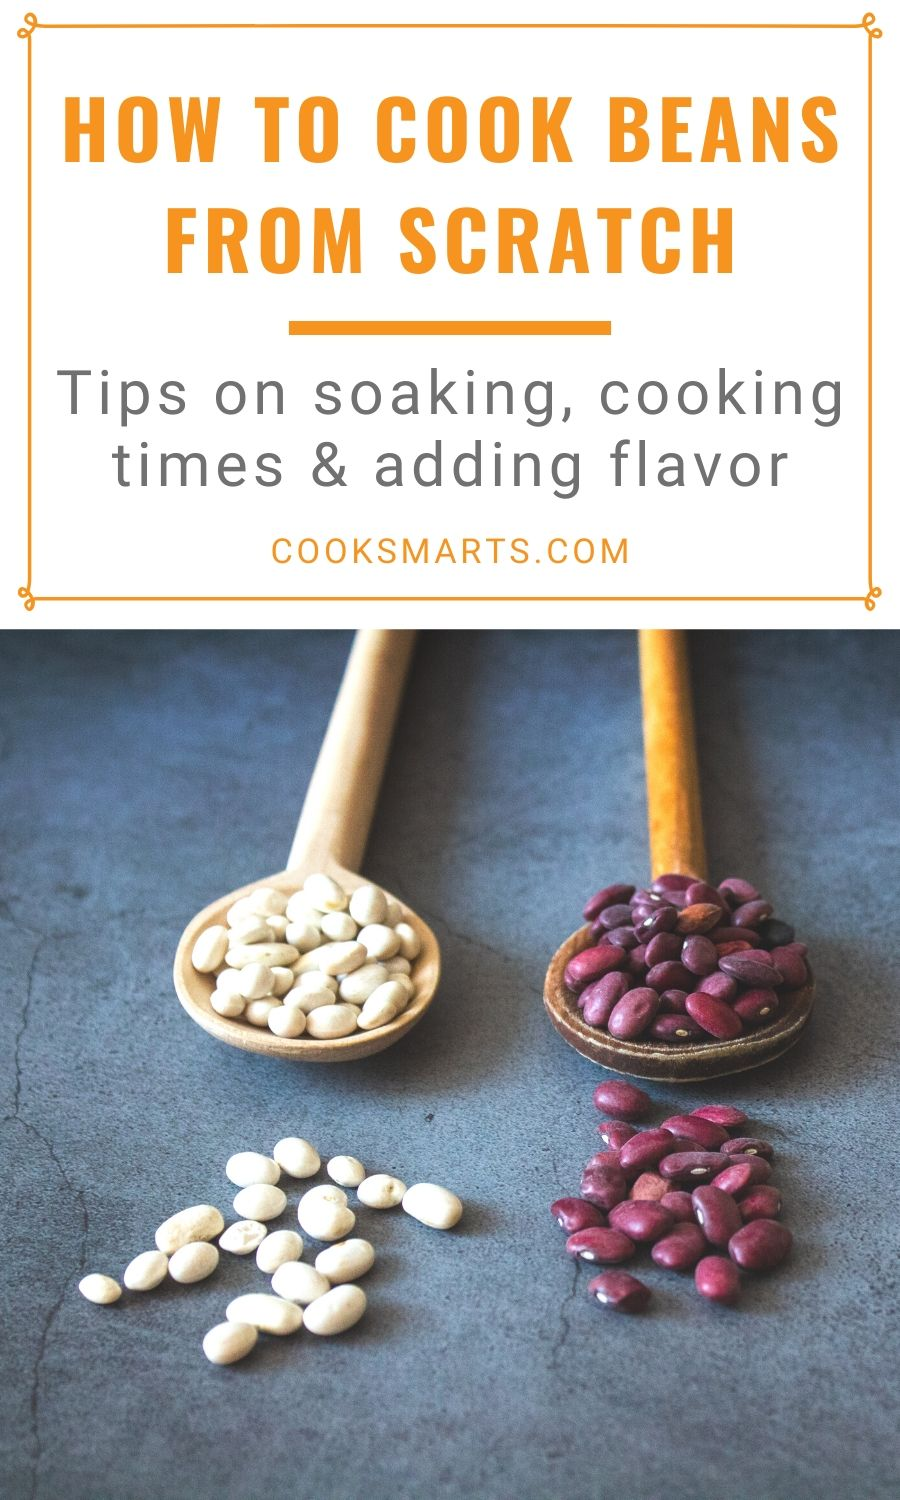 How to Cook Beans from Scratch | Cook Smarts